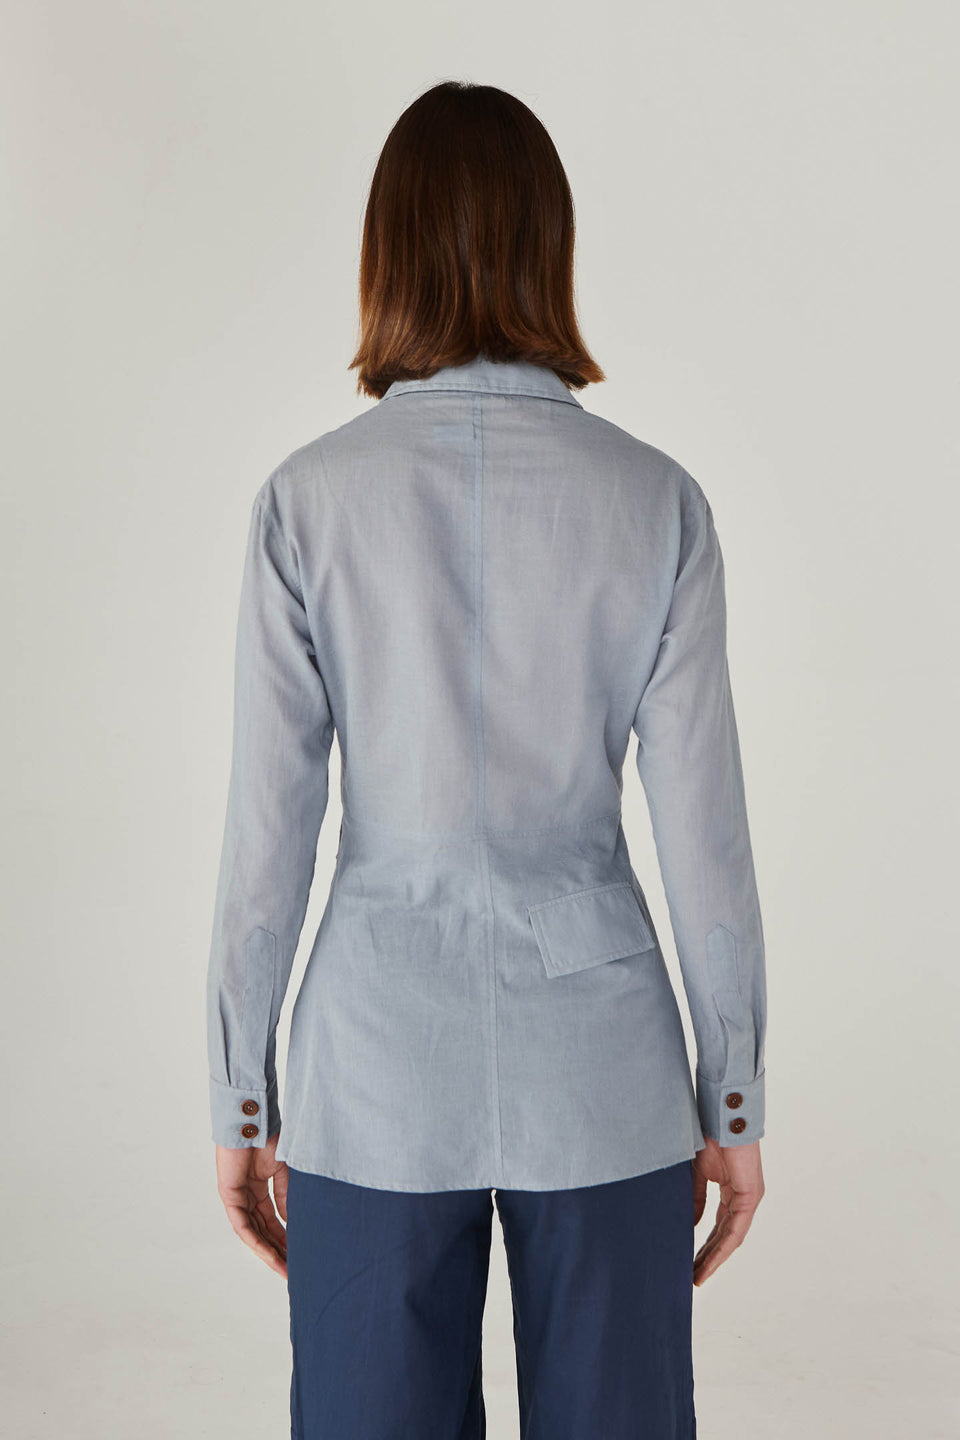 POCKET BLUE SHIRT